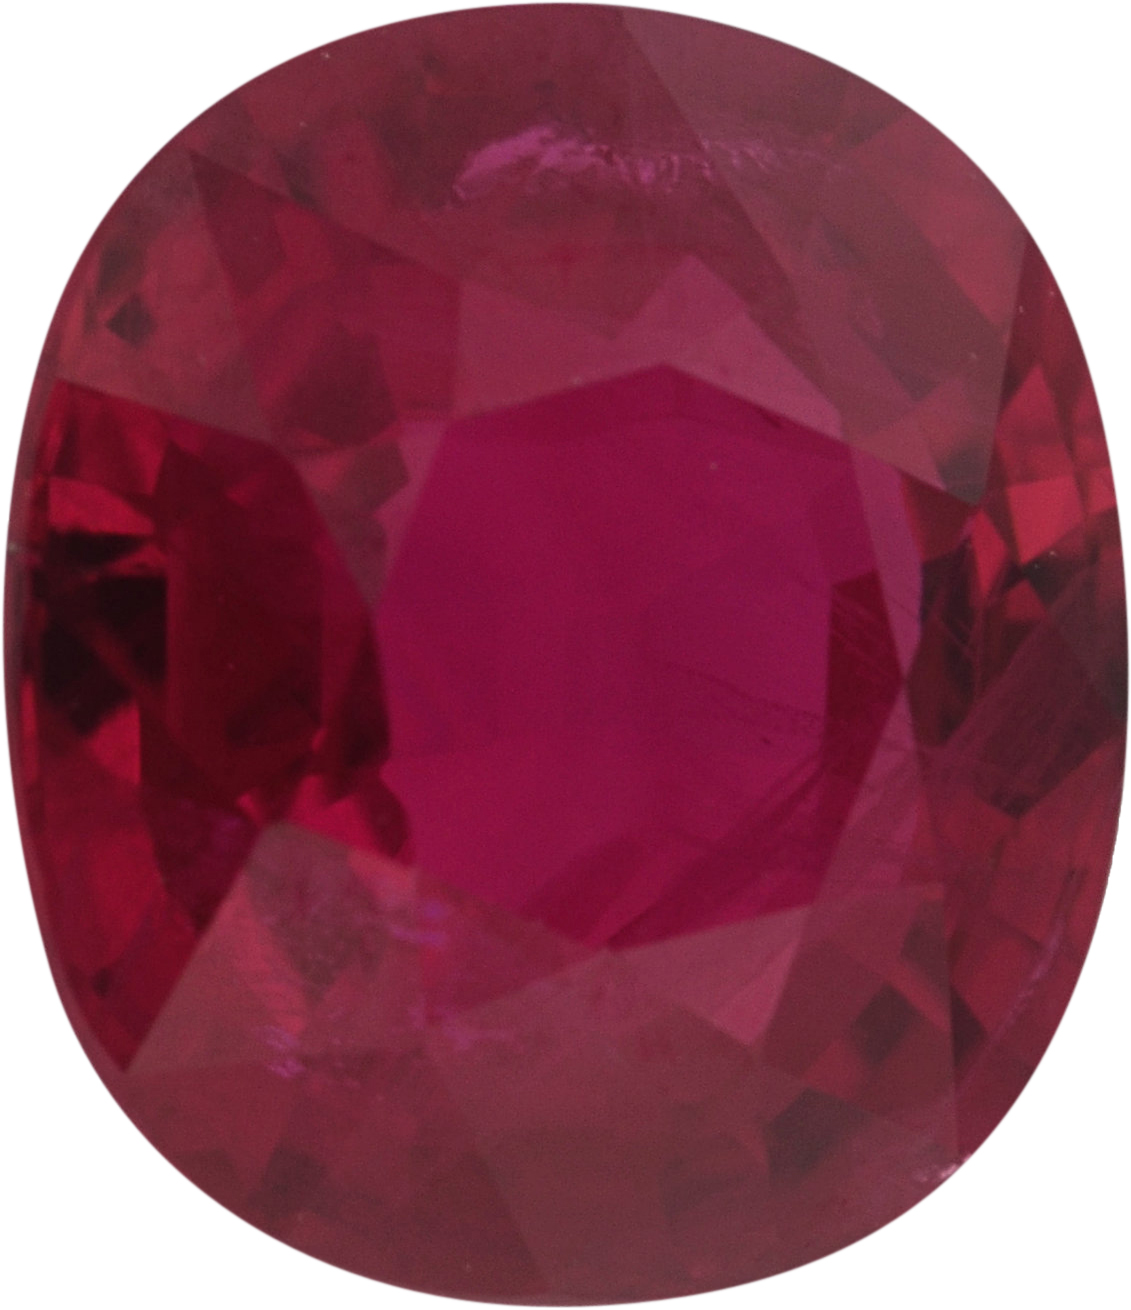 1.16 carats Ruby Loose Gemstone in Antique Cushion Cut, Brownish Red, 6.33 x 5.67 mm